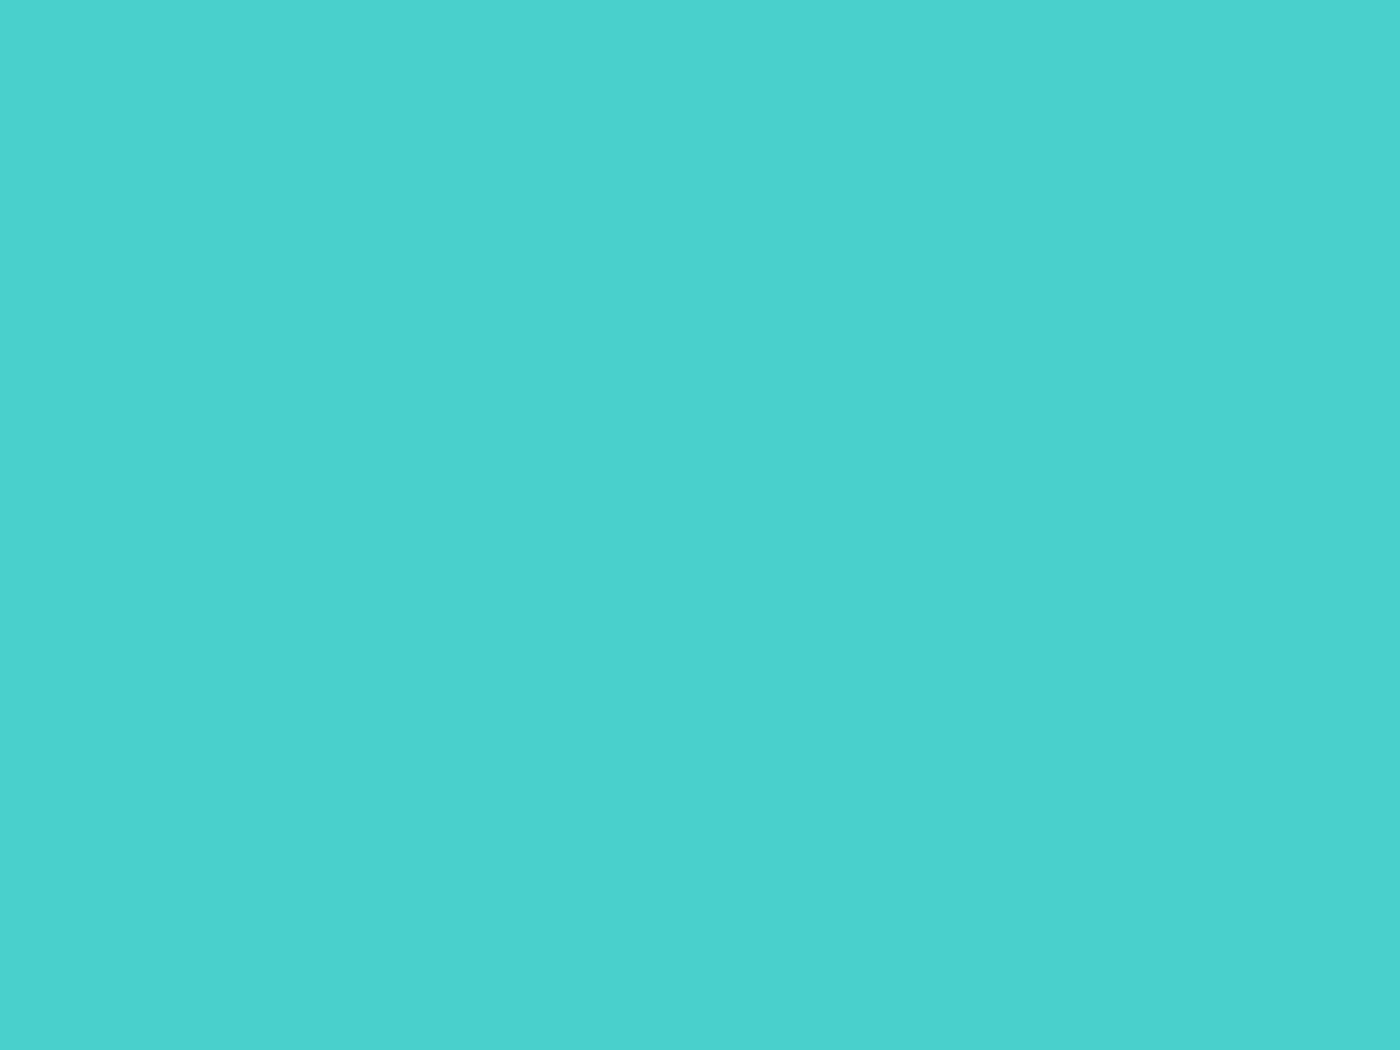 1400x1050 Medium Turquoise Solid Color Background